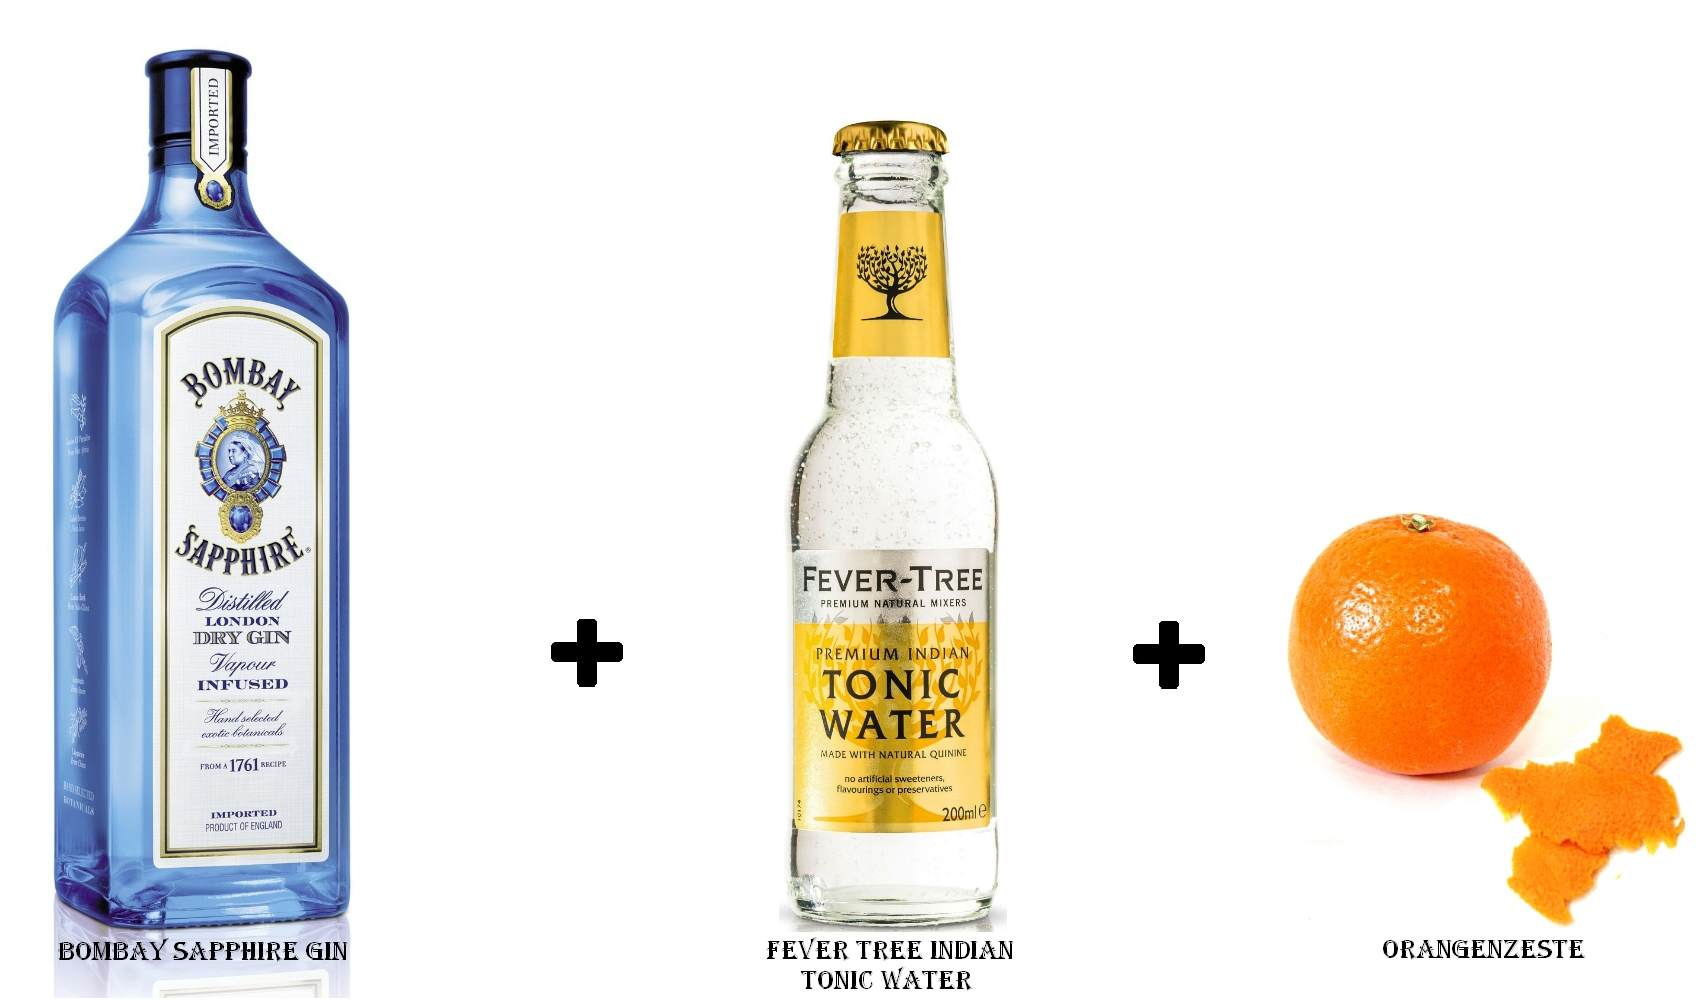 Bombay Sapphire Gin + Fever Tree Indian Tonic Water + Orangenzeste